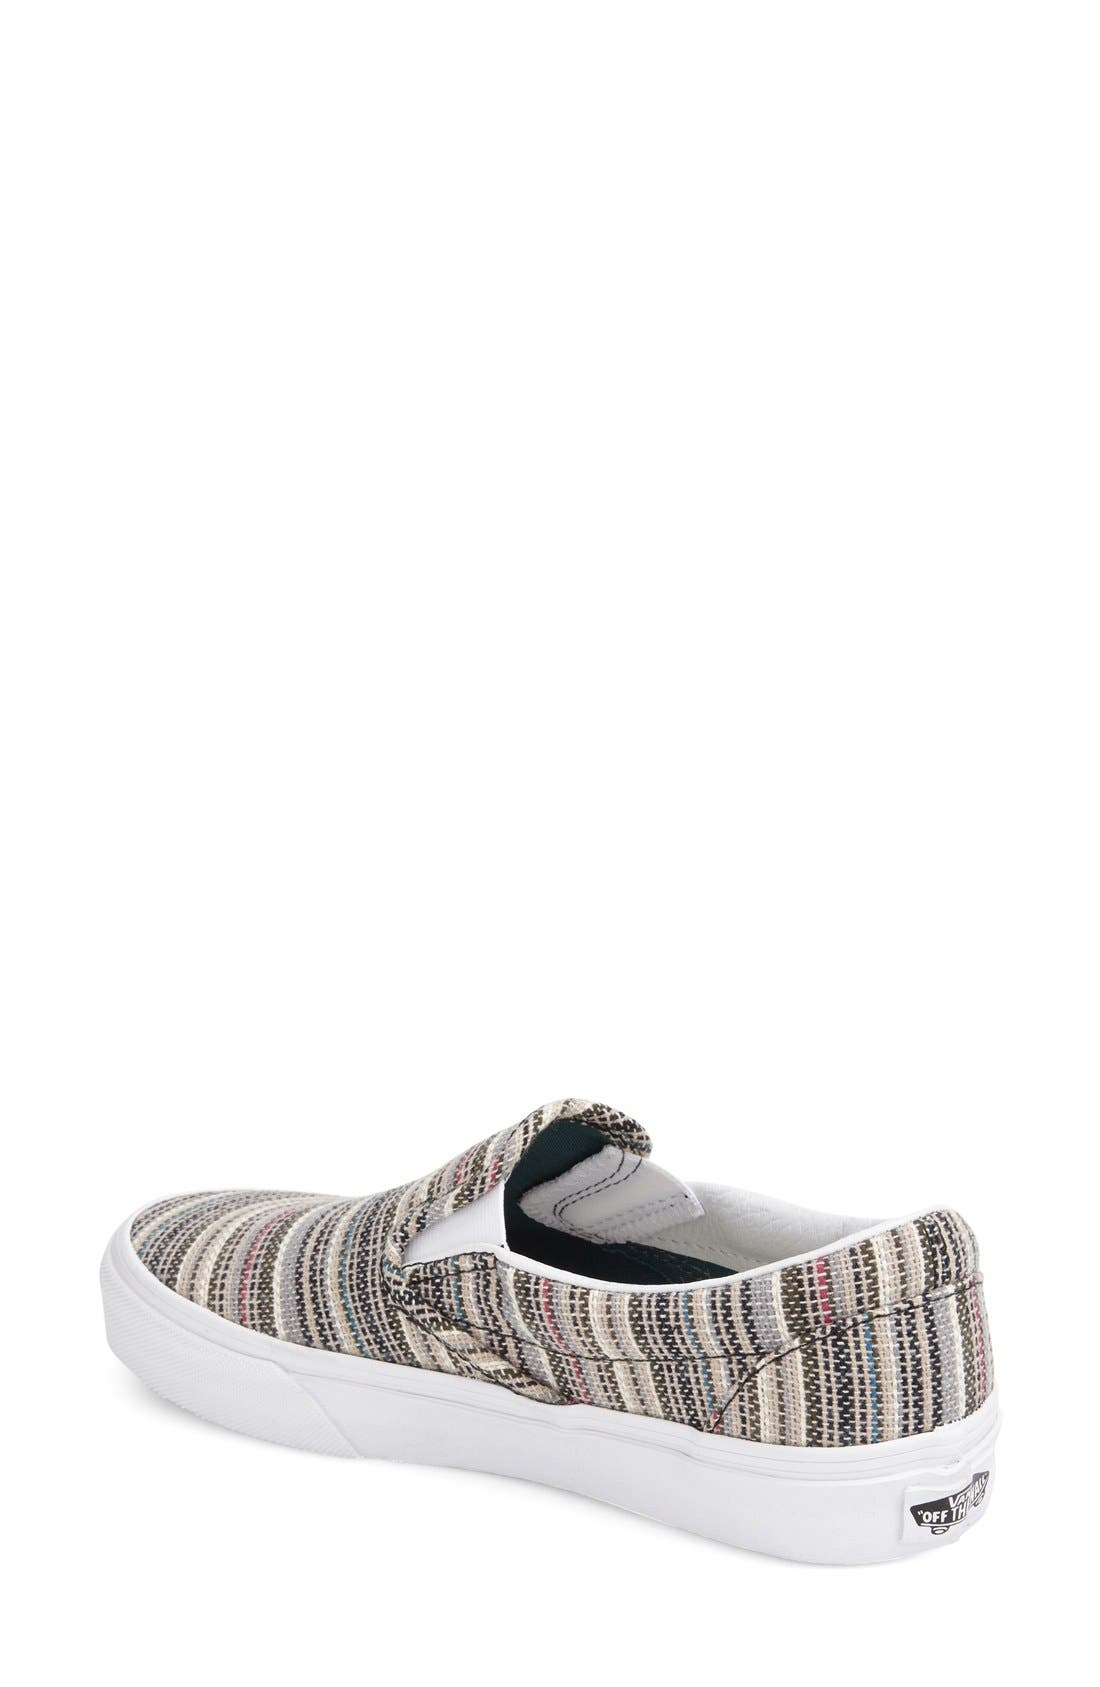 Classic Slip-On Sneaker,                             Alternate thumbnail 455, color,